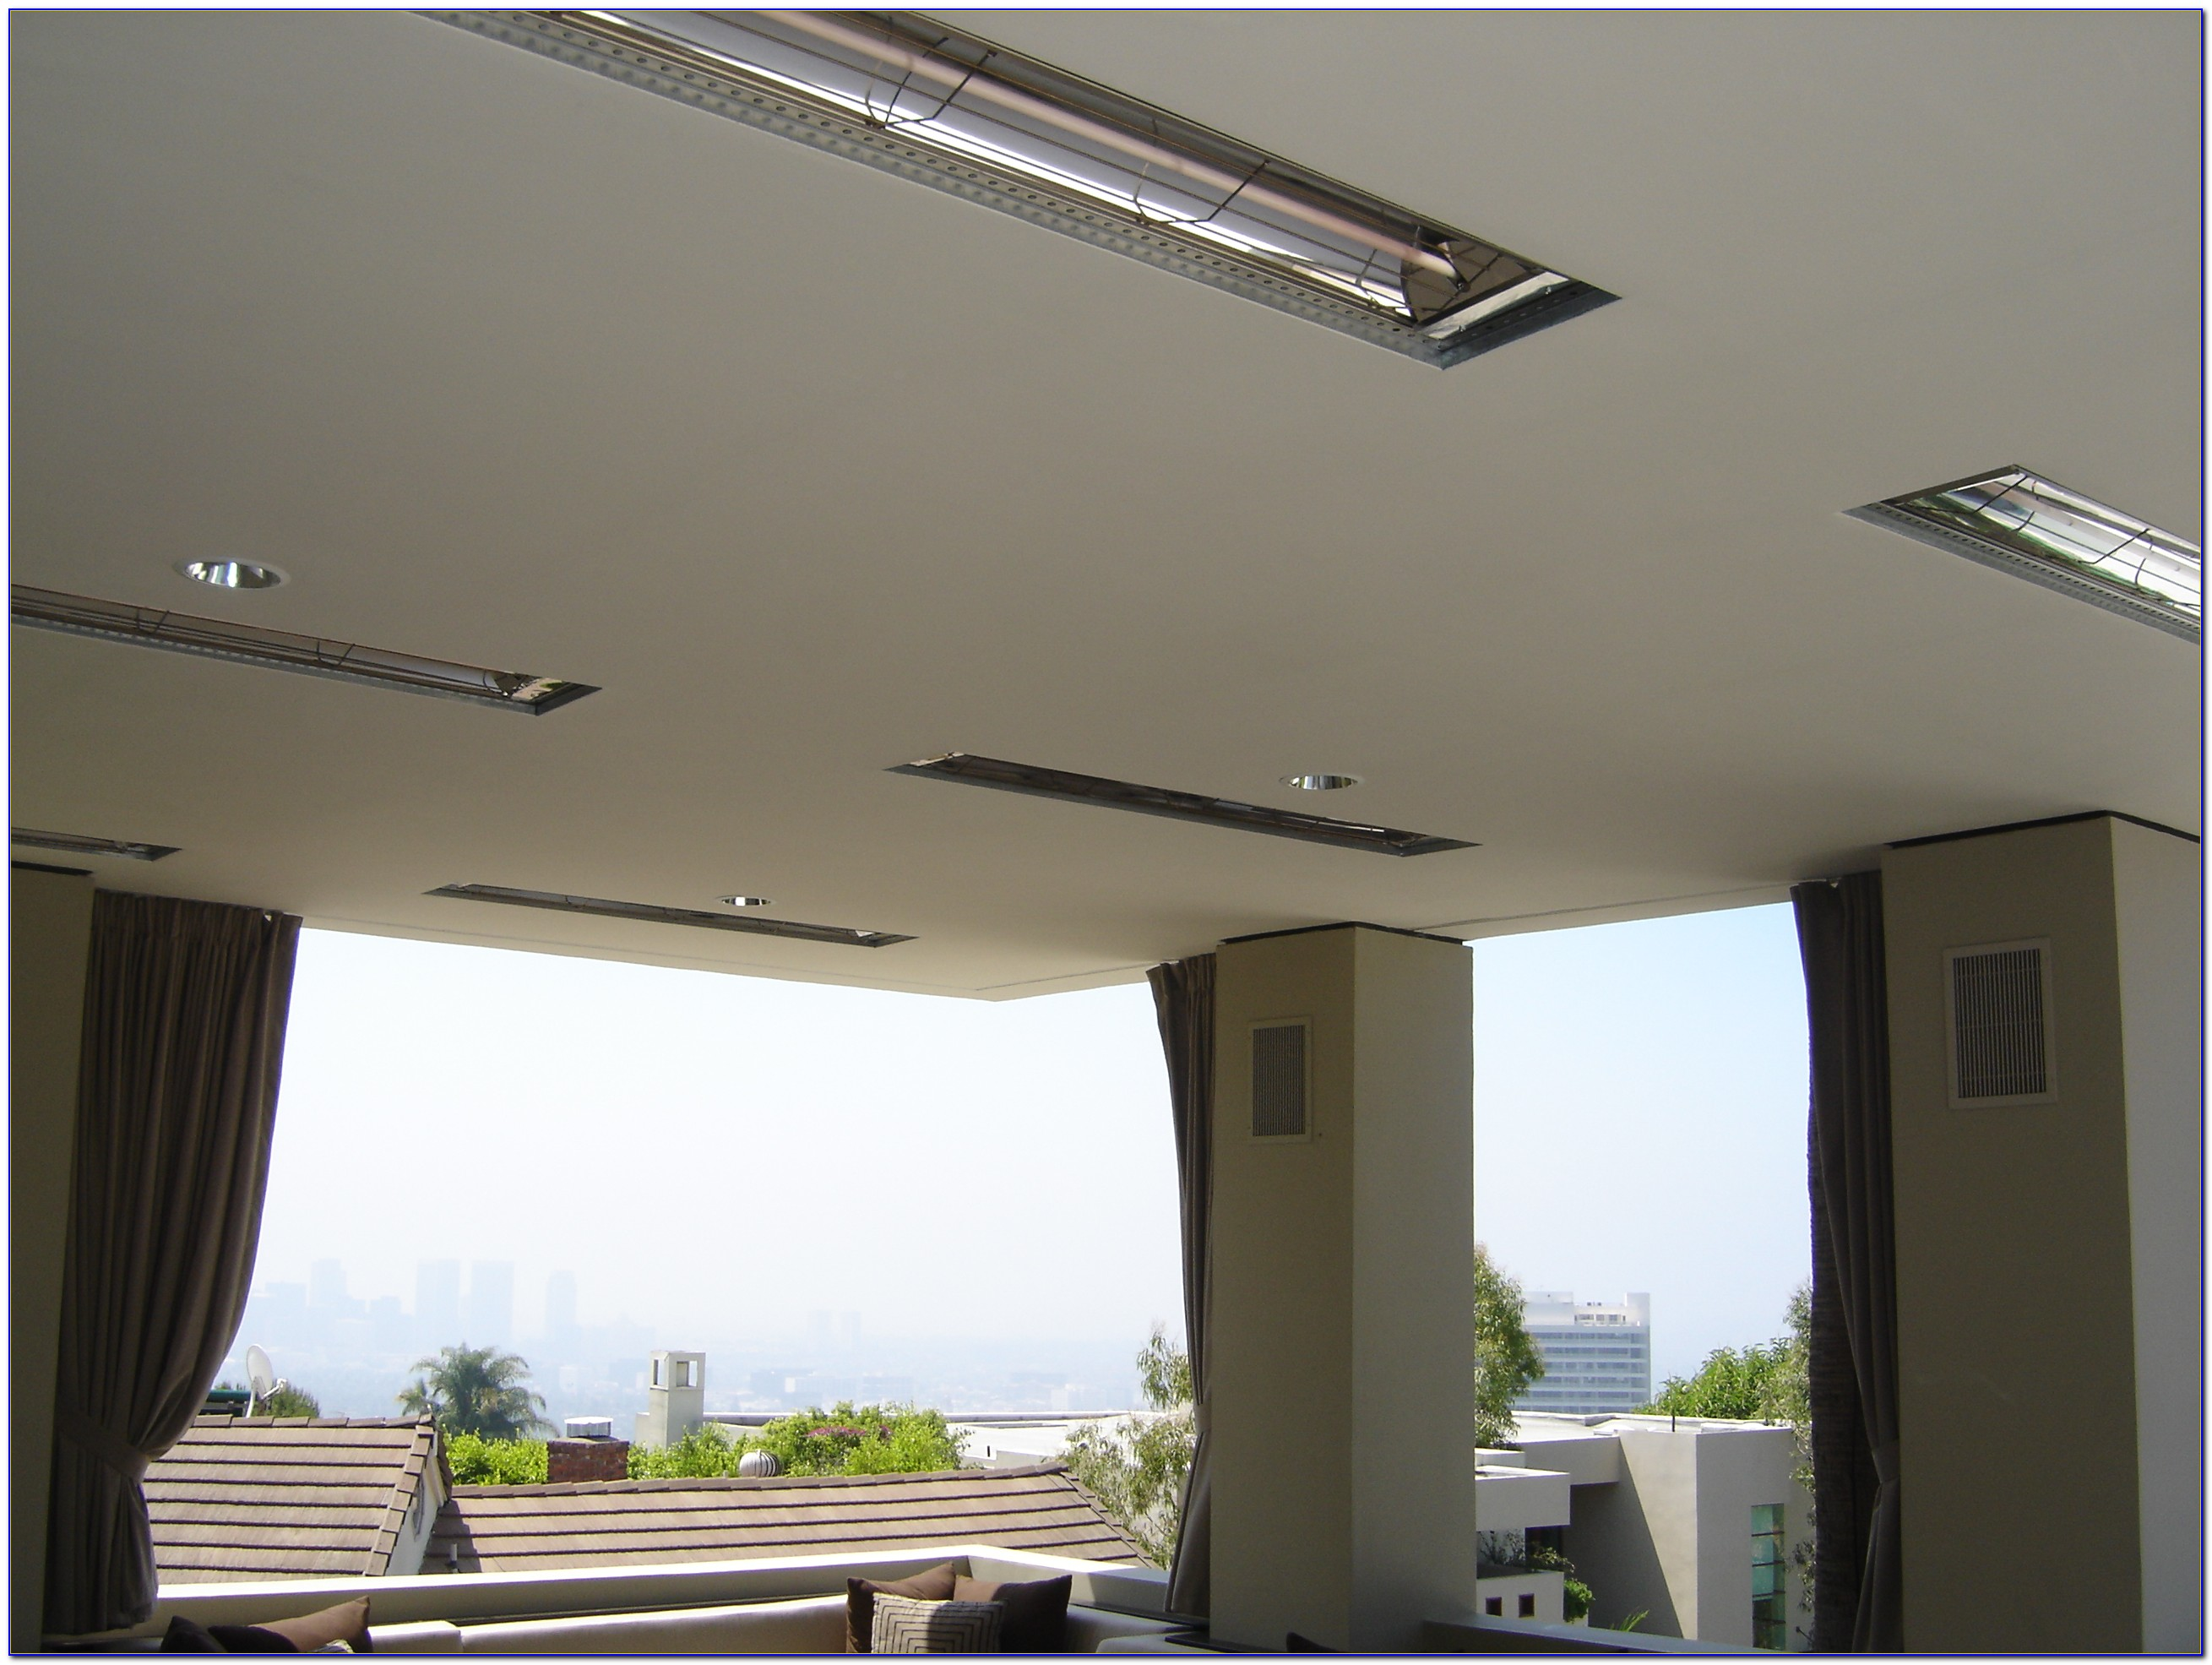 Ceiling Mounted Radiant Heater